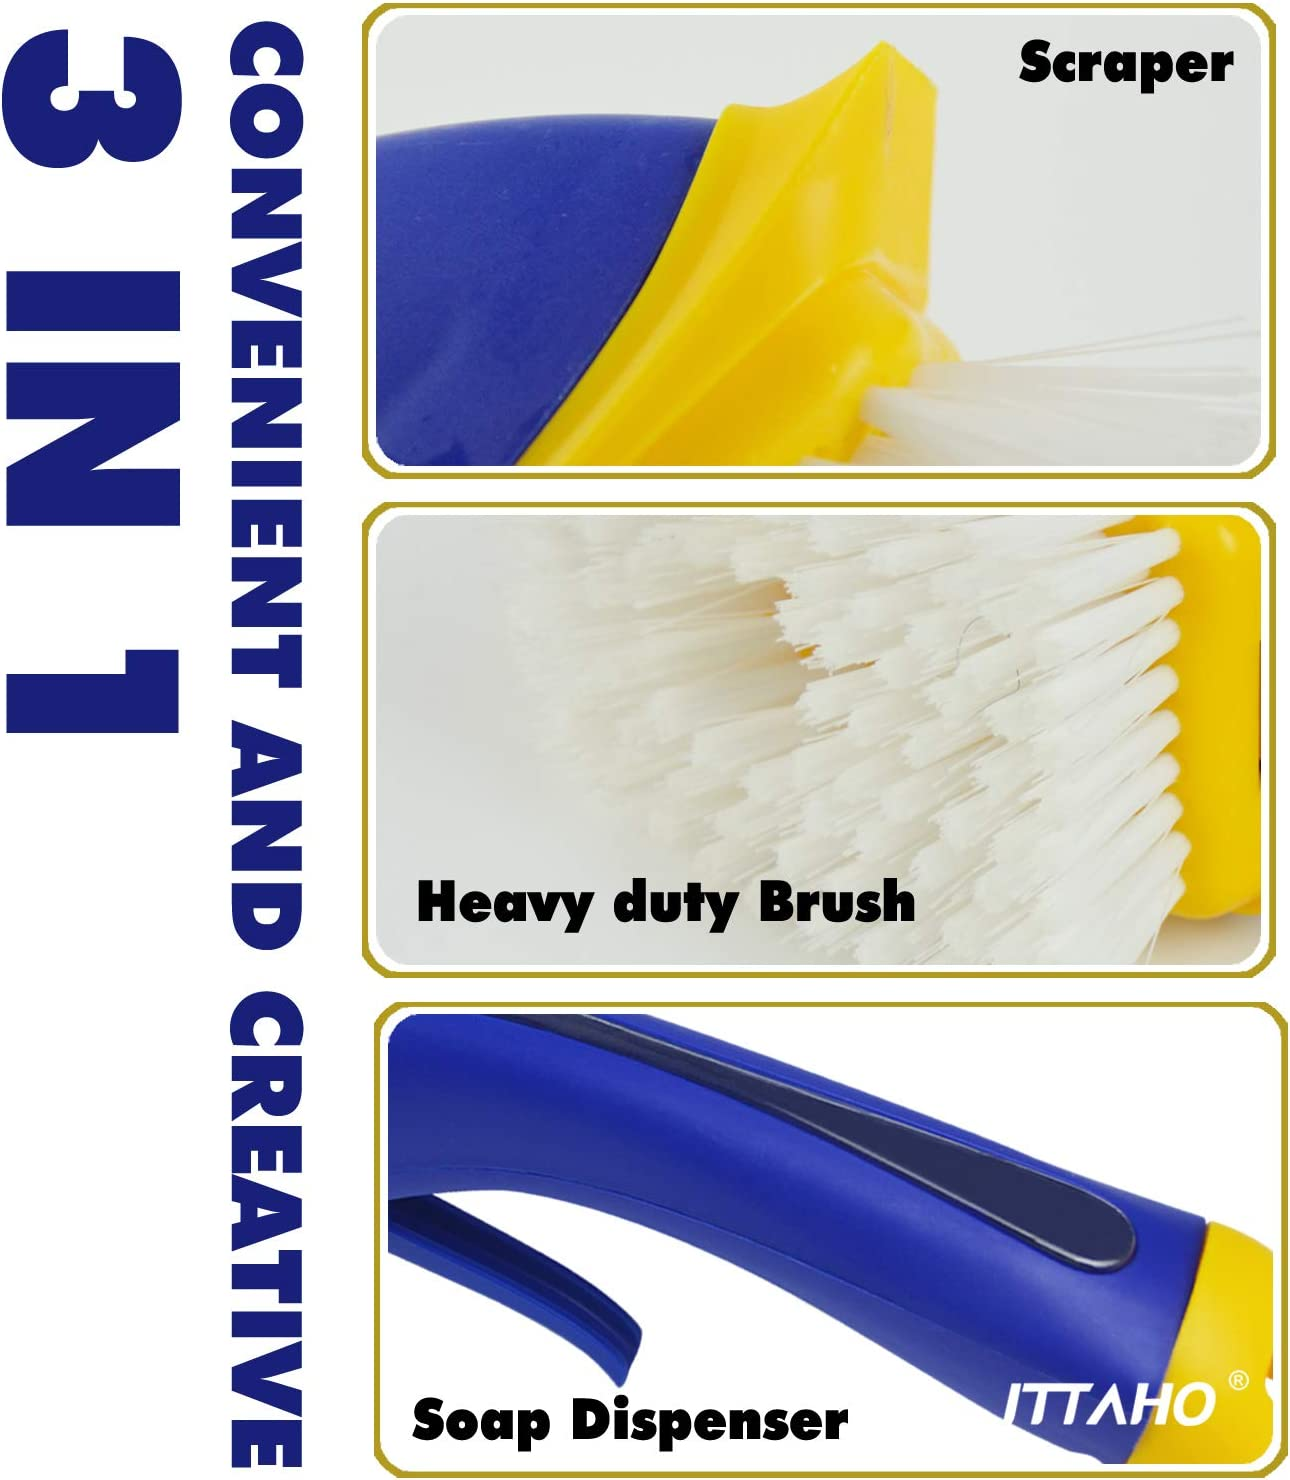 ITTAHO 3-In-1 Heavy Duty Scrub Brush with Soap Dispenser,Large-Size Grout and Tile Brush,Floor Scrub Brush,Tub Scrubber Cleaning Brush for Walls,Shower,Tile,Bathroom,Kitchen,Countertop and Grill Clean